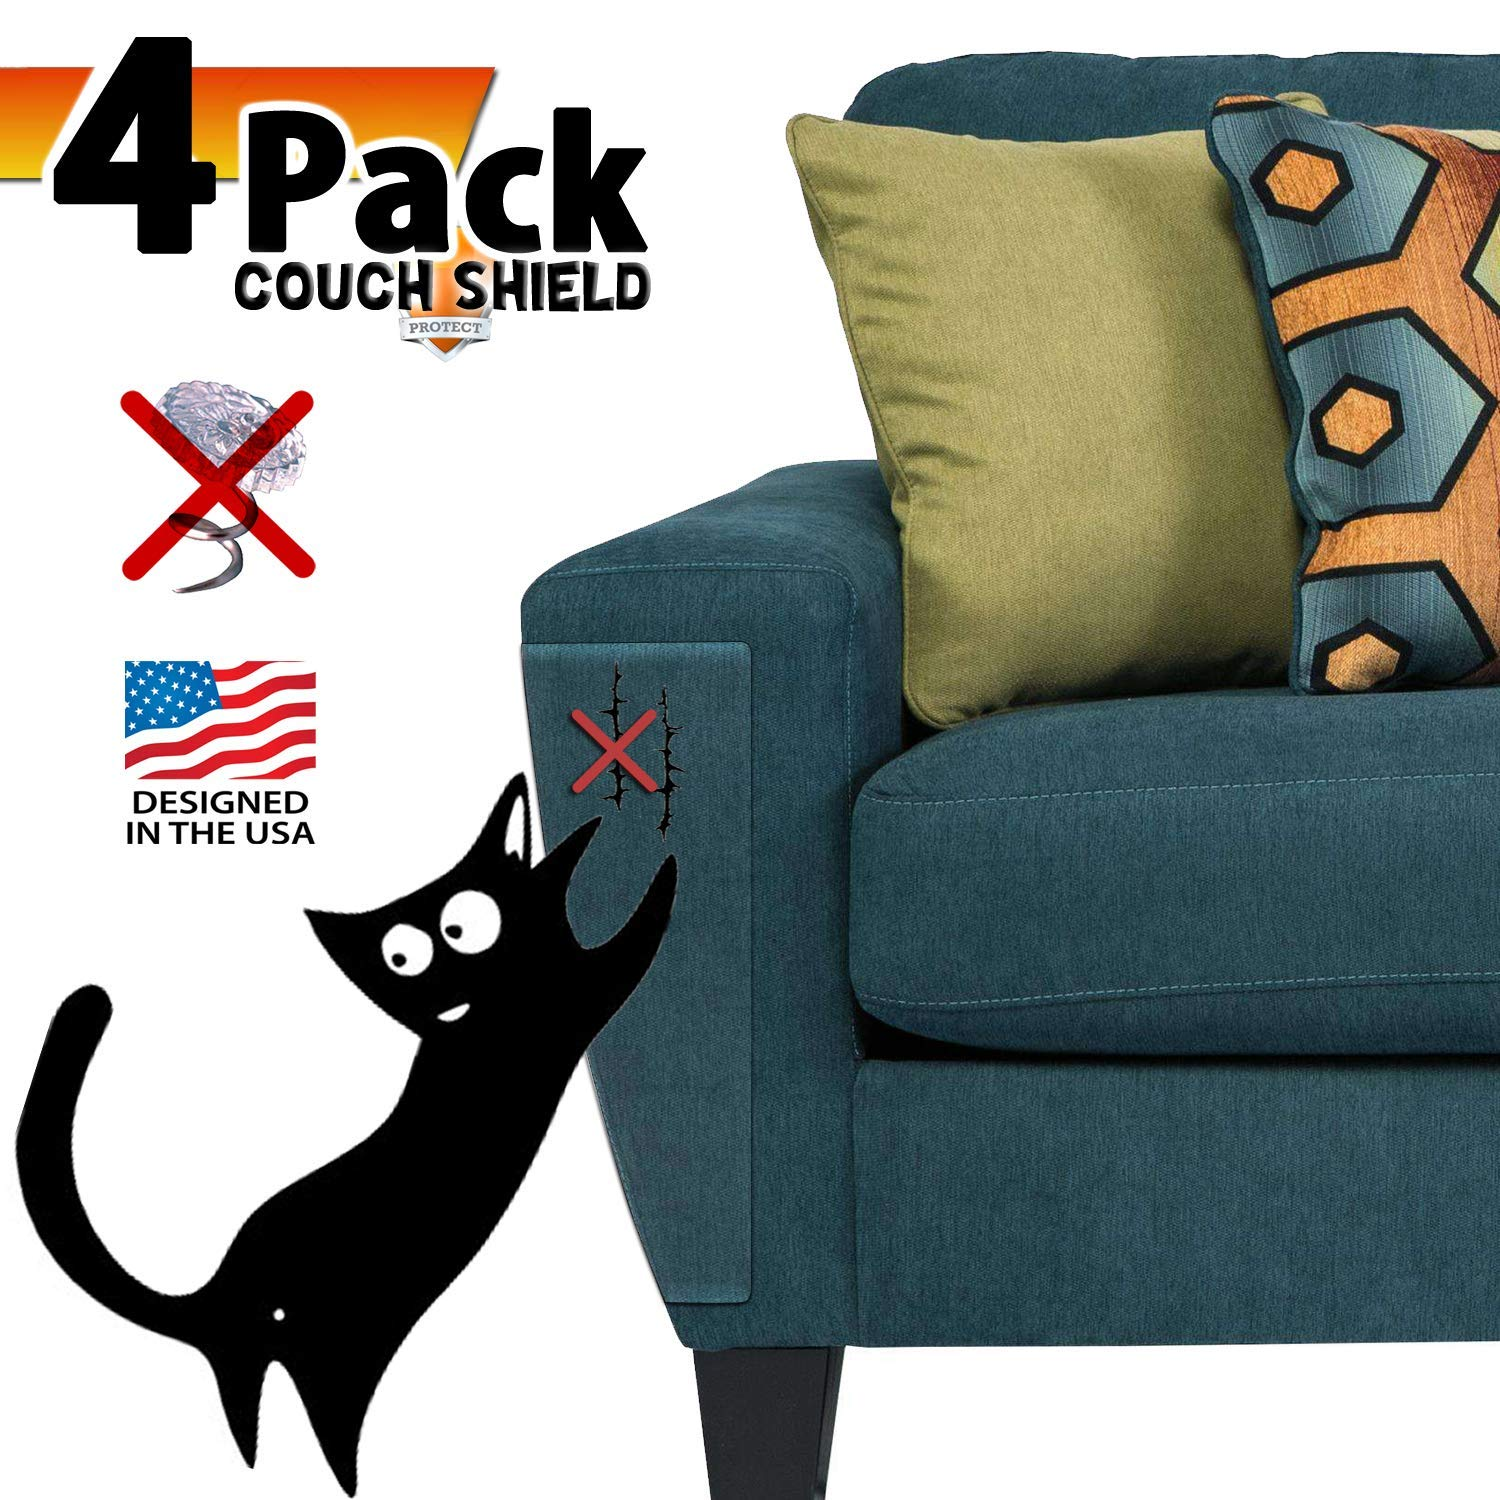 4PCS Couch Defender for Cats, Stop Pets from Scratching Furniture,Anti Scratch Mattress Protector,Chair and Sofa Deterrent Guards,Corners Scratch Cover ,Claw Proof Pads for Door and Wall